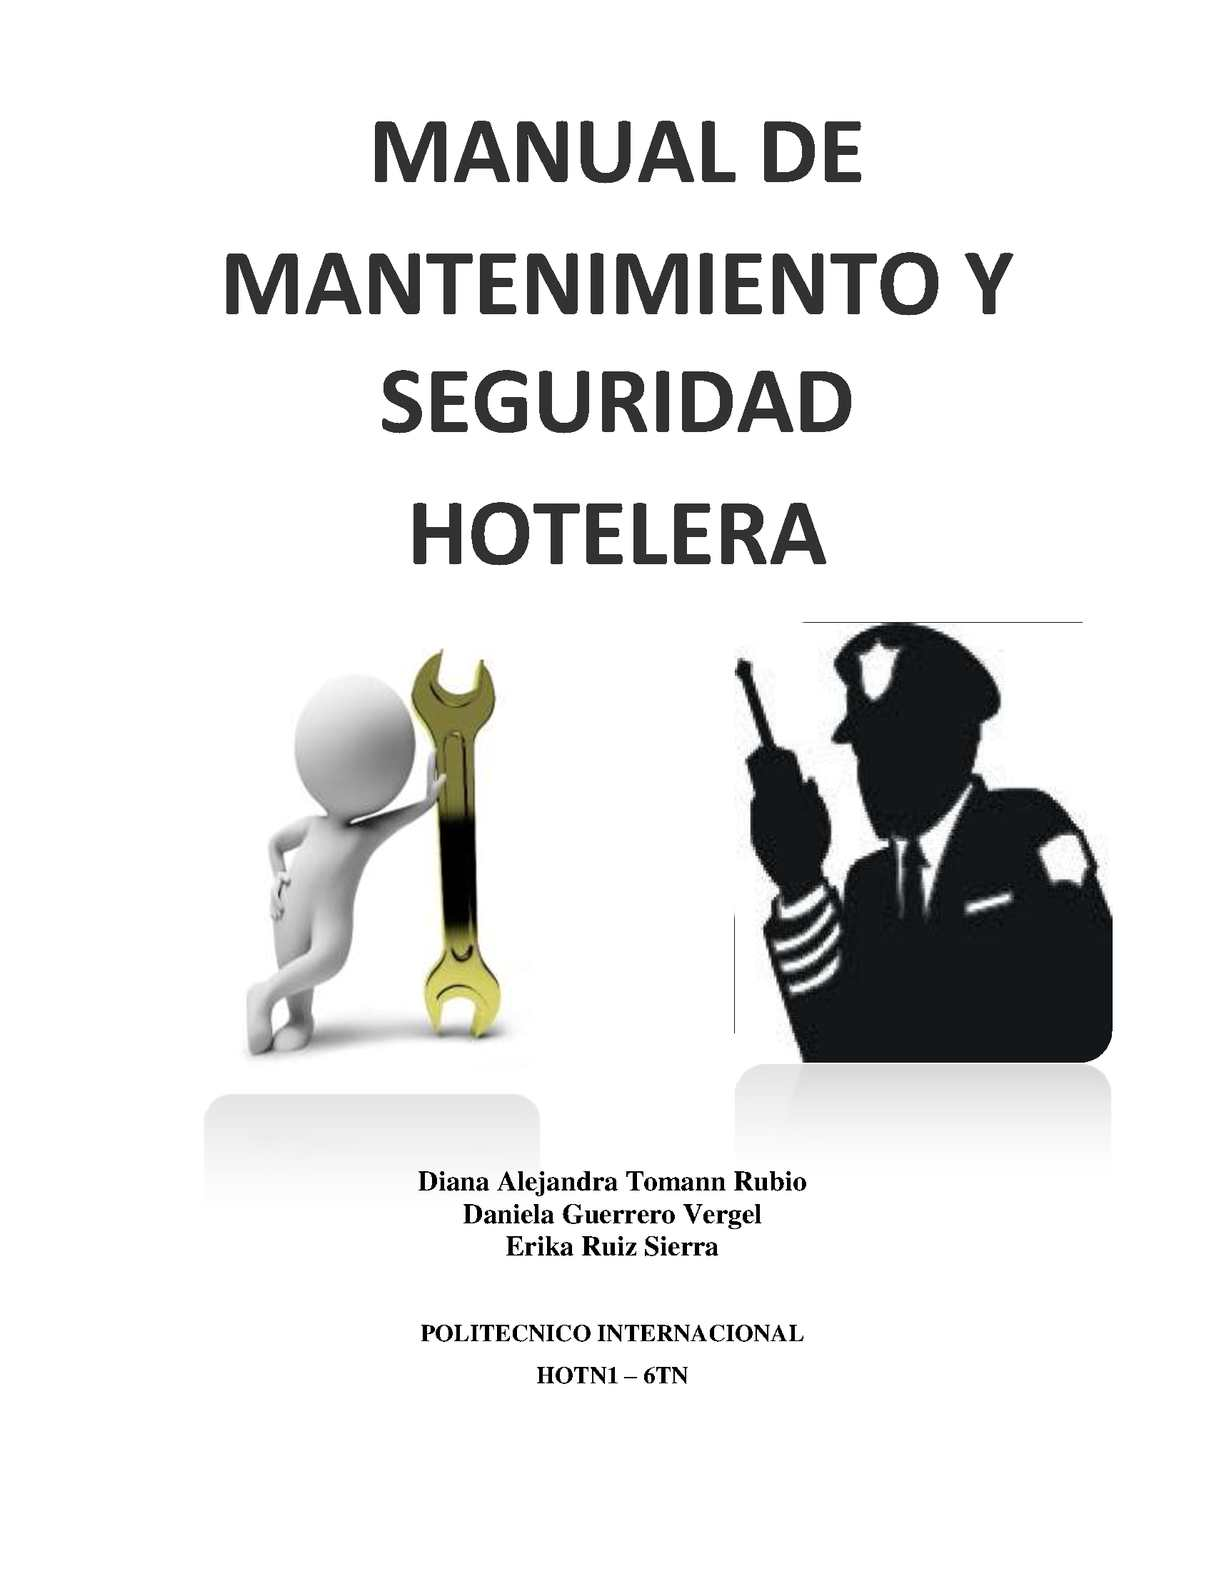 Calam o manual de mantenimiento y seguridad hotelera for Manual de procedimientos de cocina